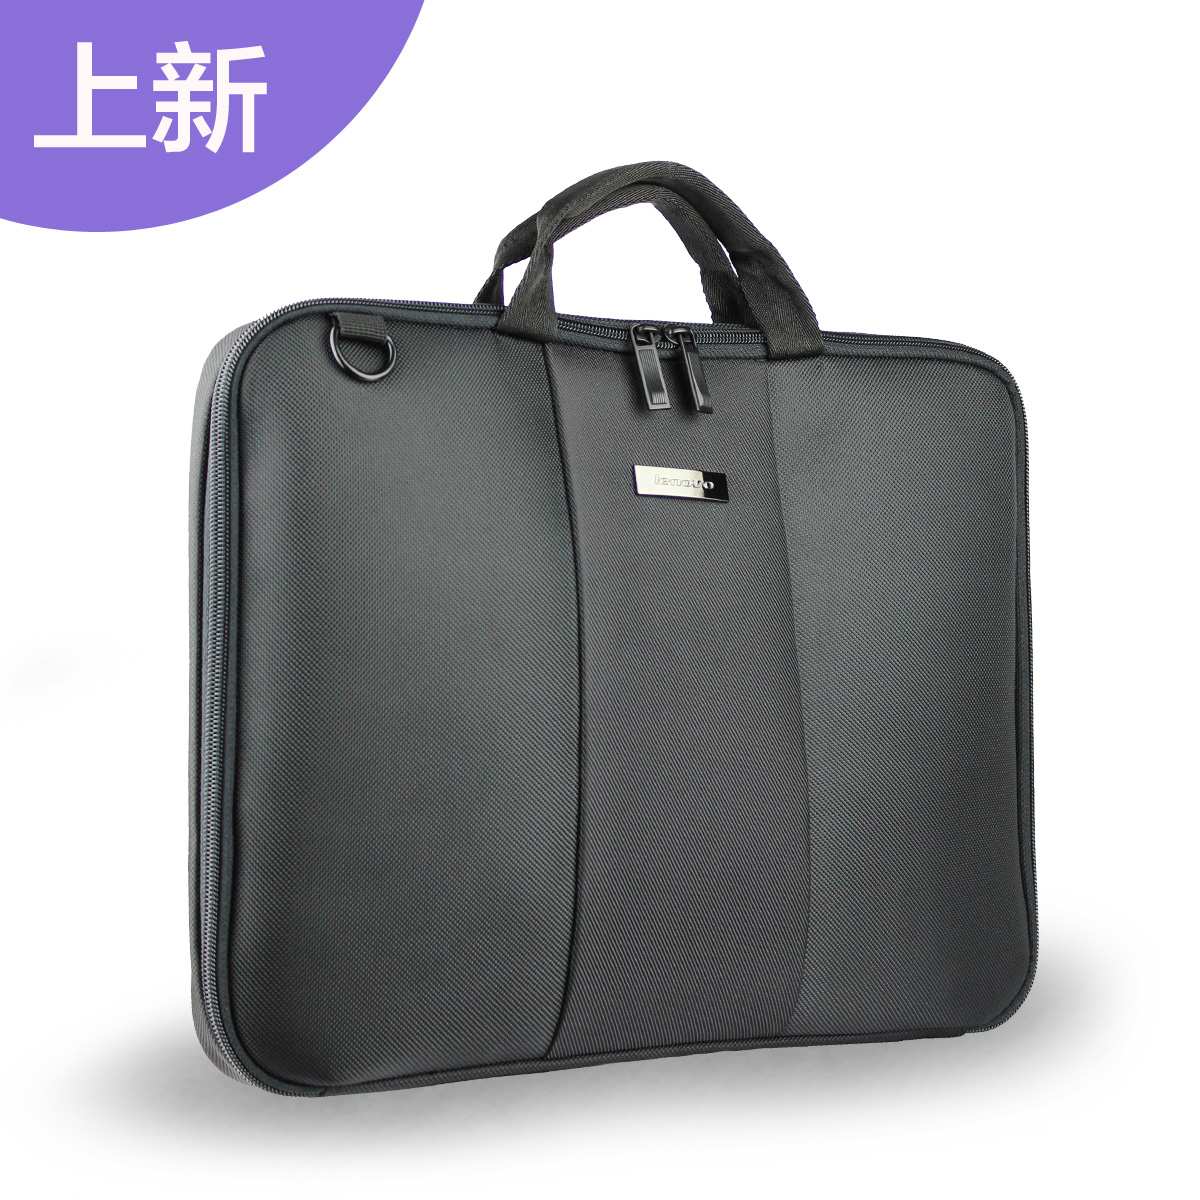 Usd 29 30 Lenovo Shoulder Bag T2140 14 Inch Laptop Bag Waterproof Thin Portable Men S And Women S Laptop Bag Wholesale From China Online Shopping Buy Asian Products Online From The Best Shoping